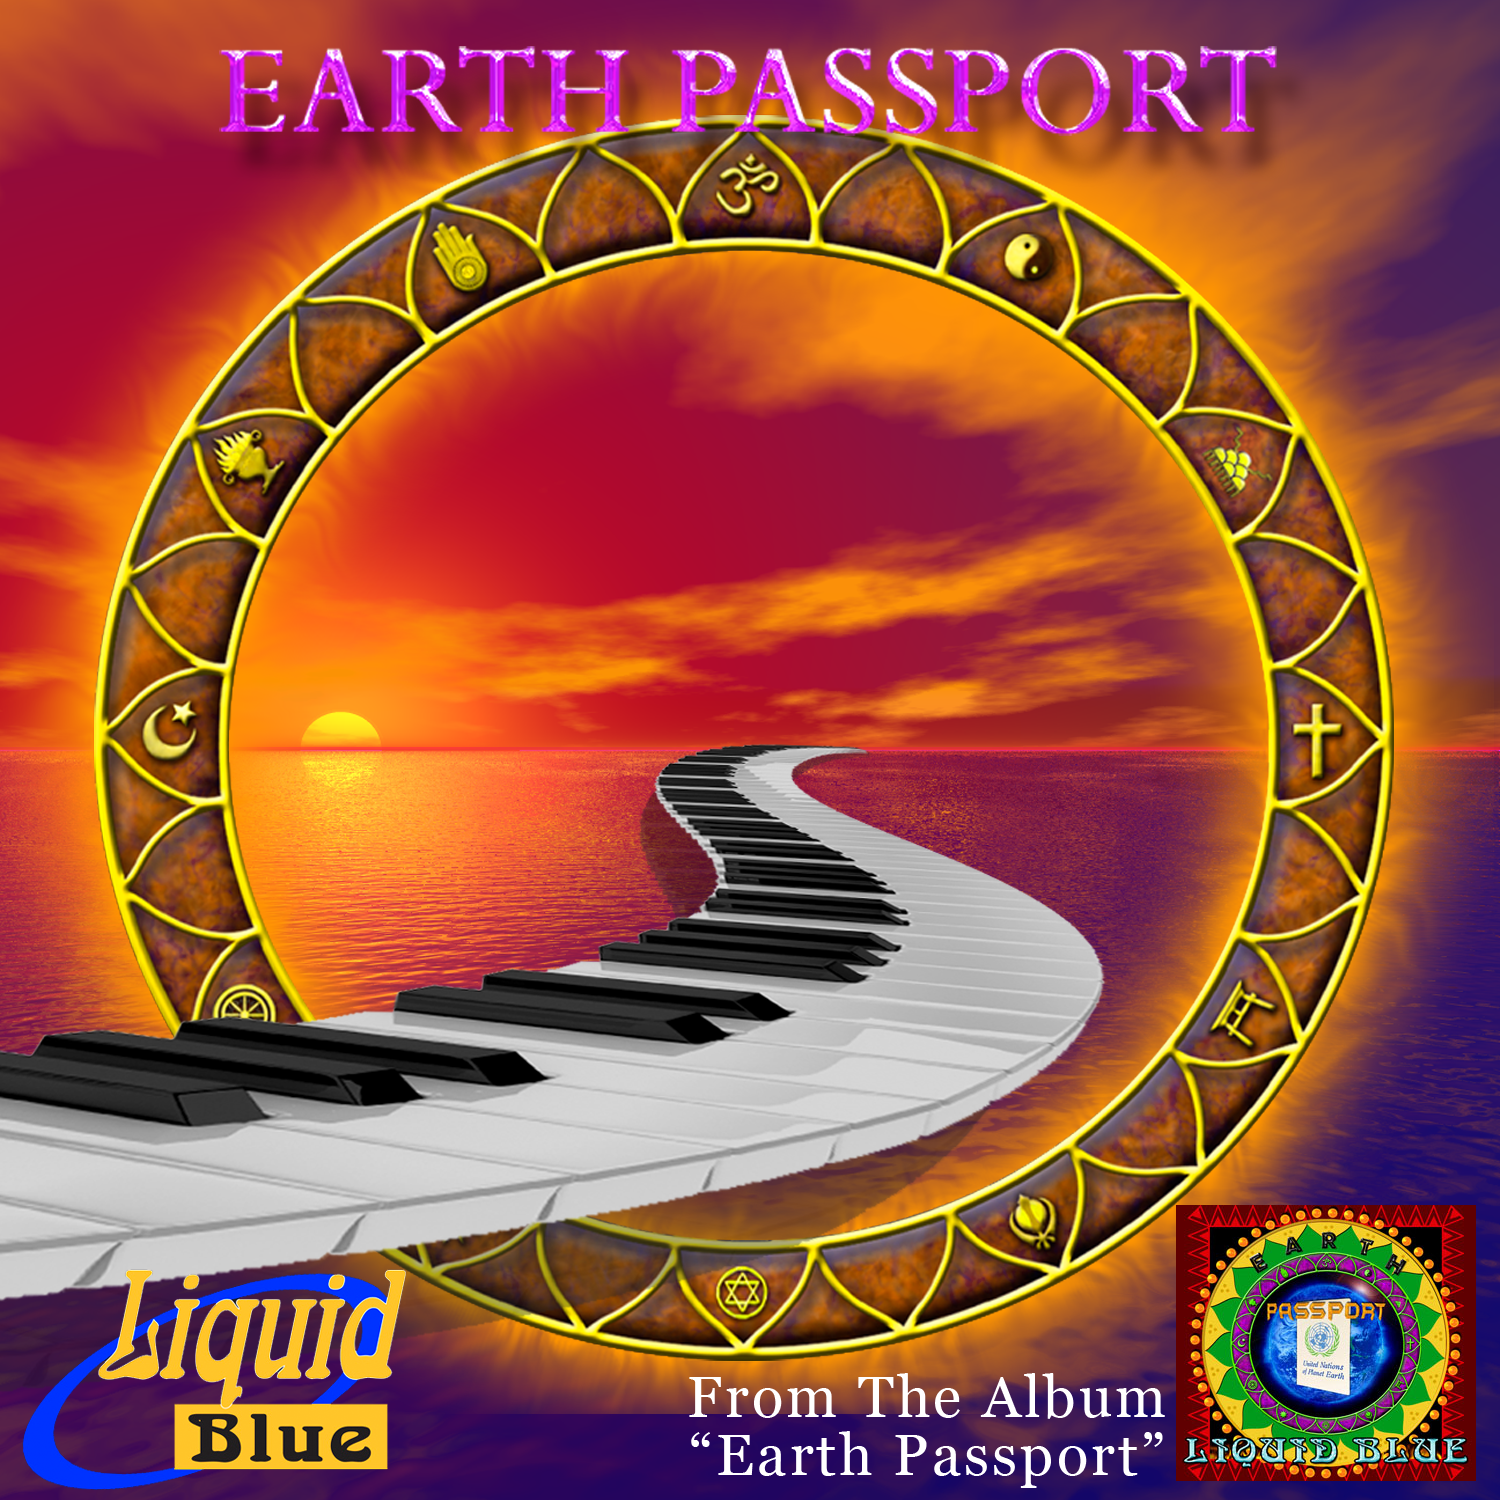 Earth Passport - Liquid Blue